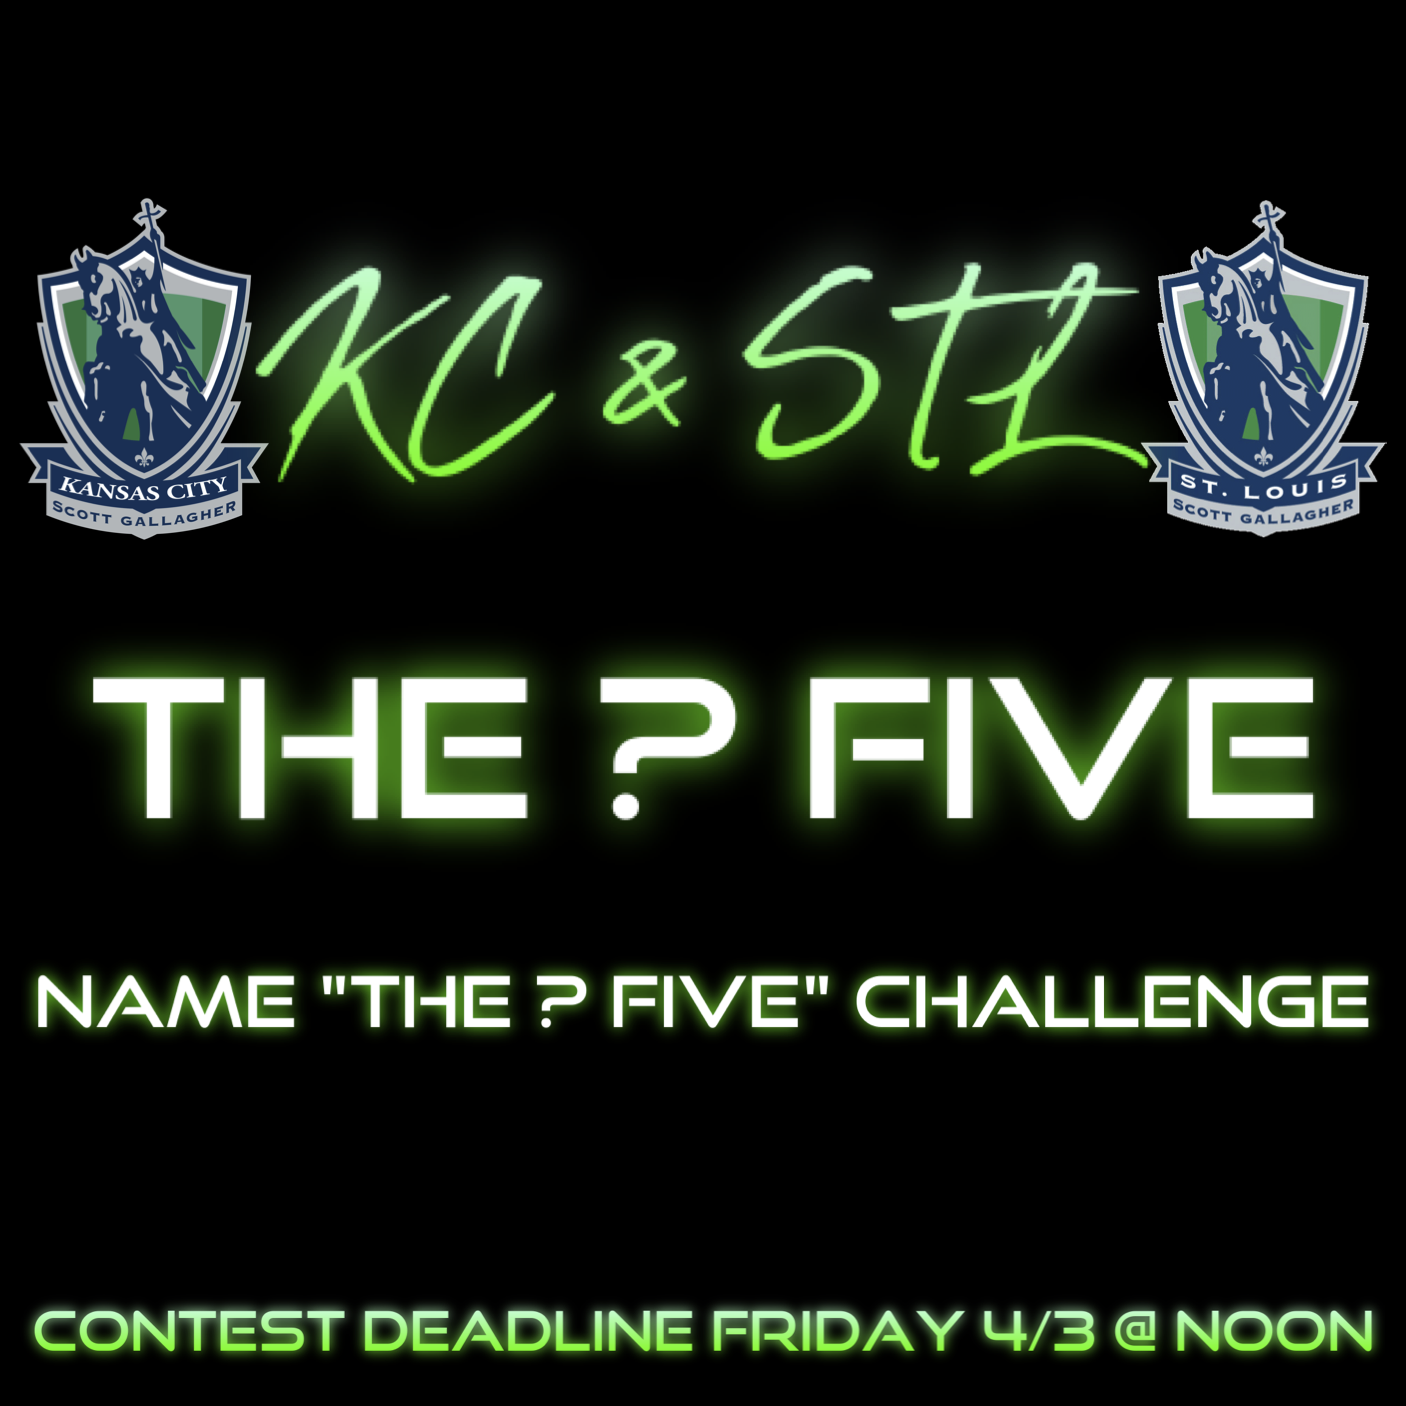 The ? Five Challenge